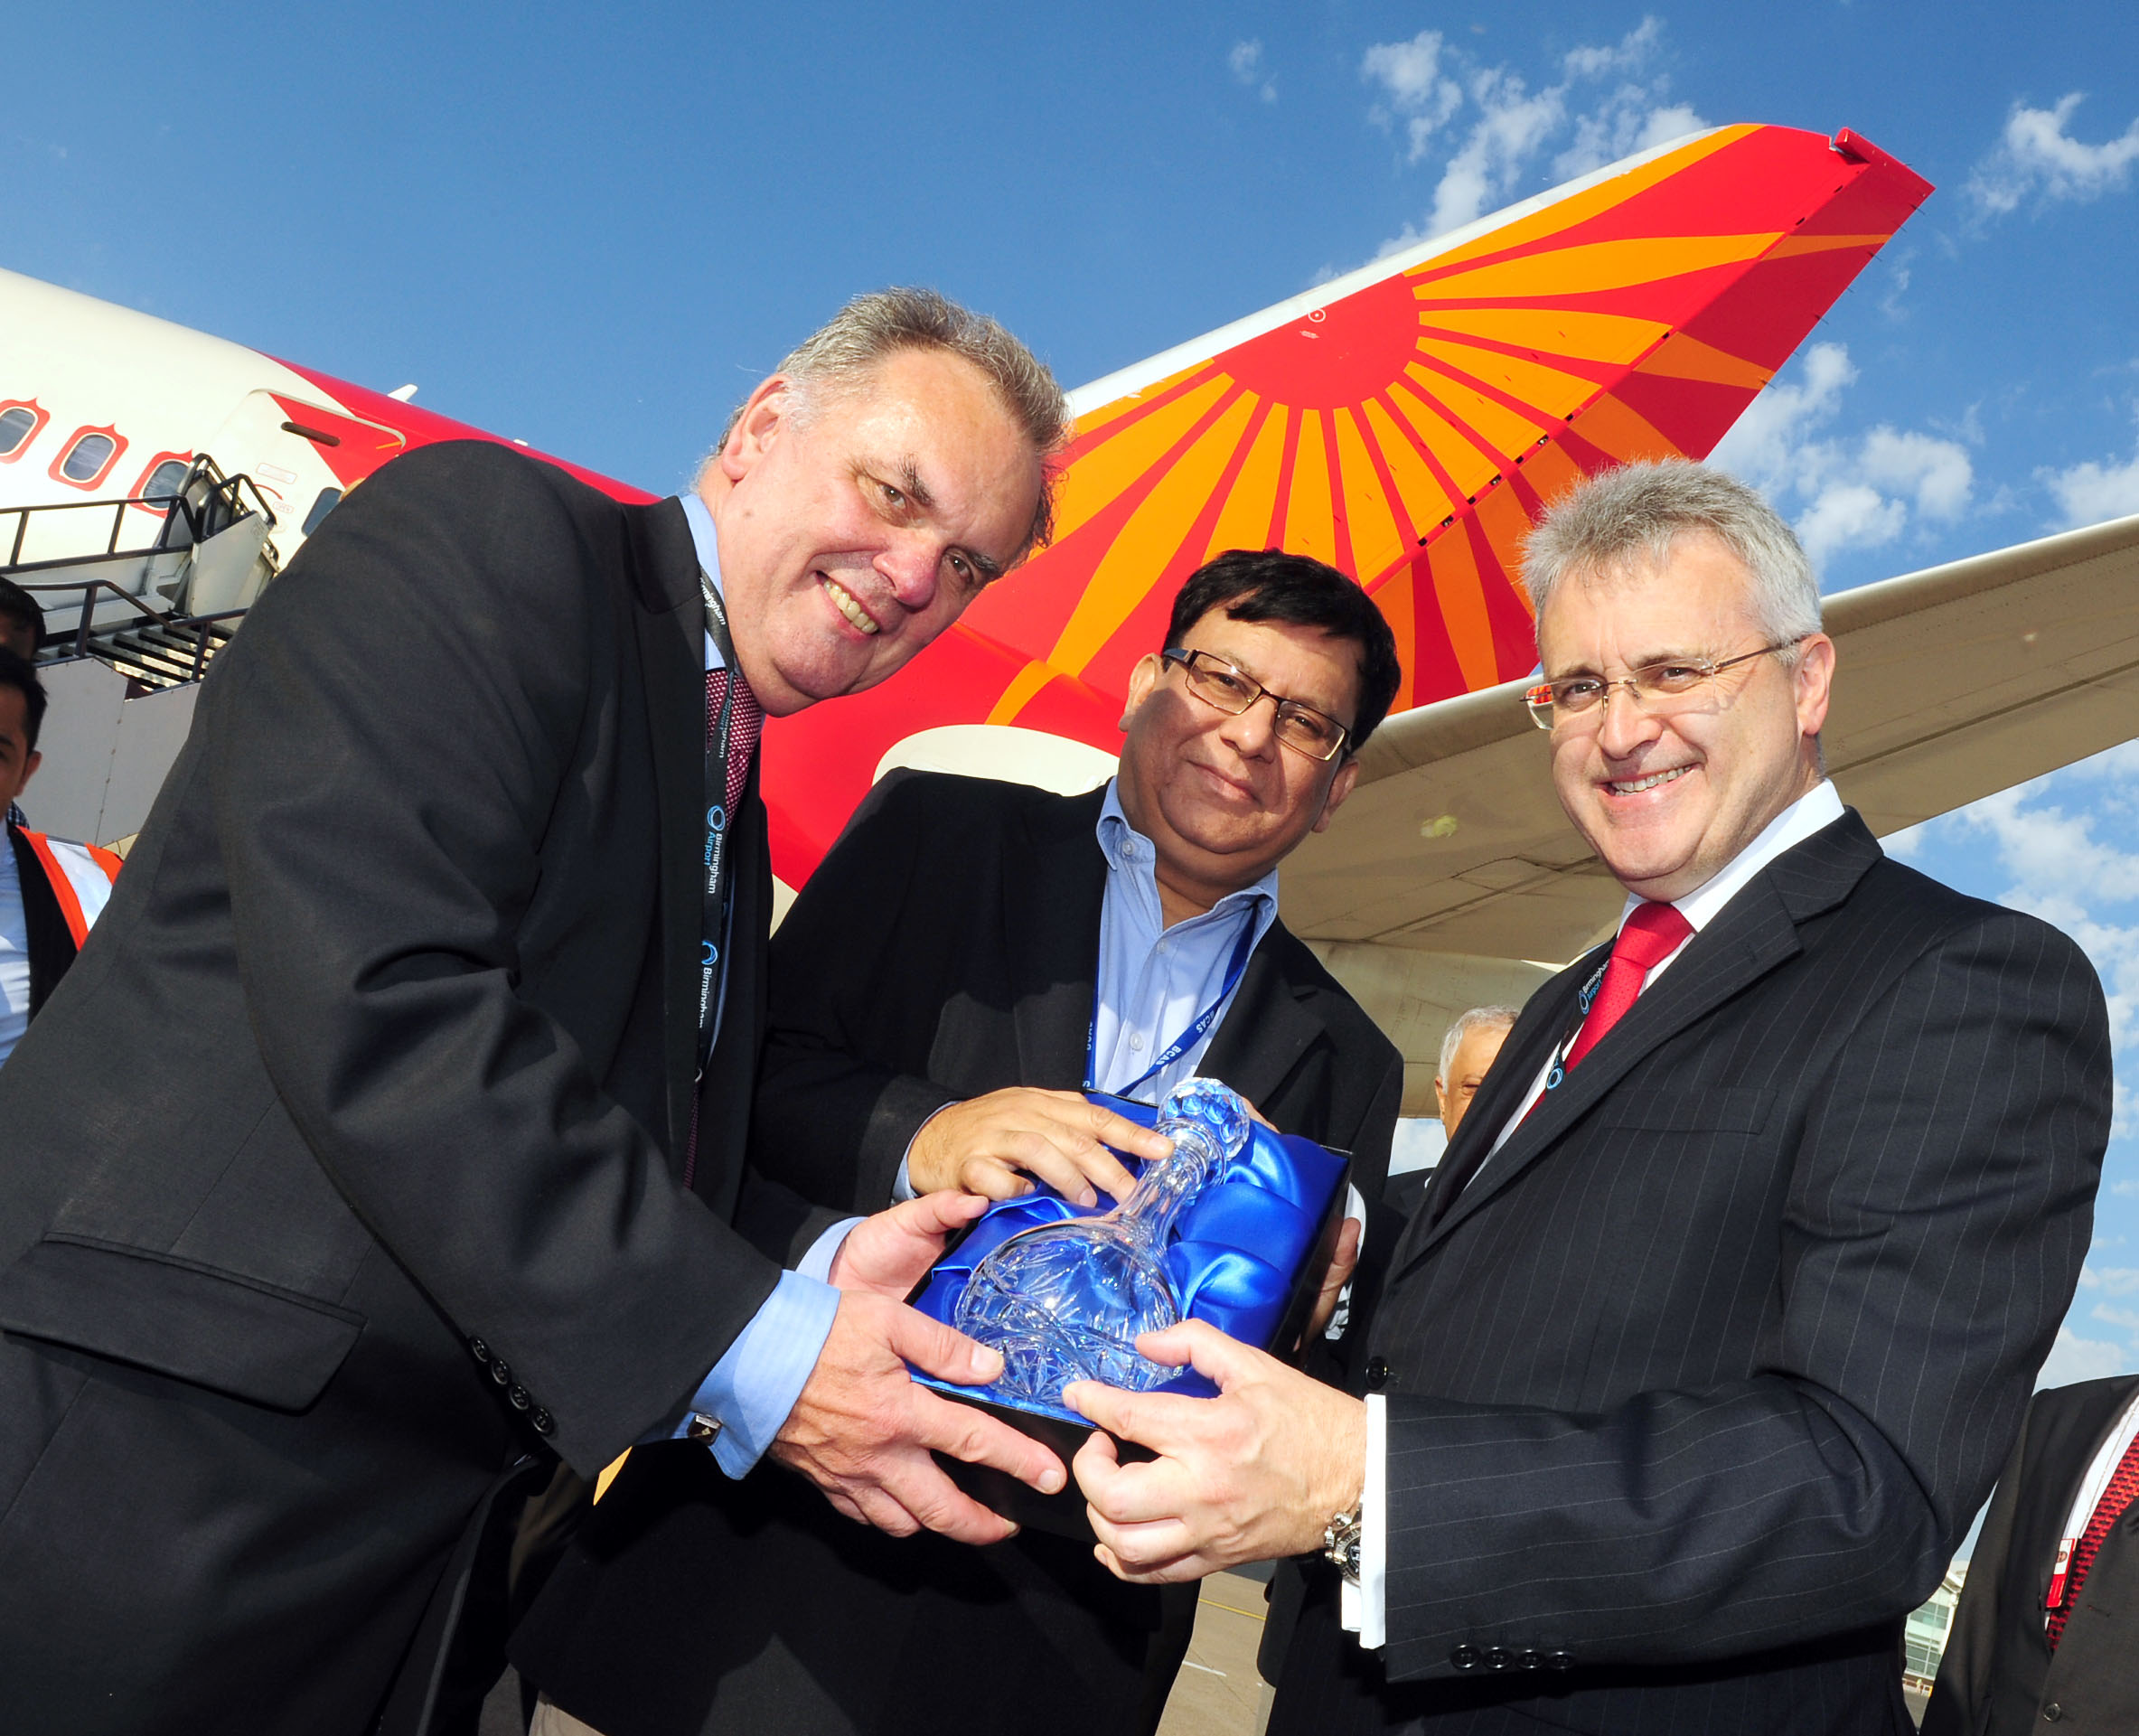 New service from Amritsar and Delhi to Birmingham launched